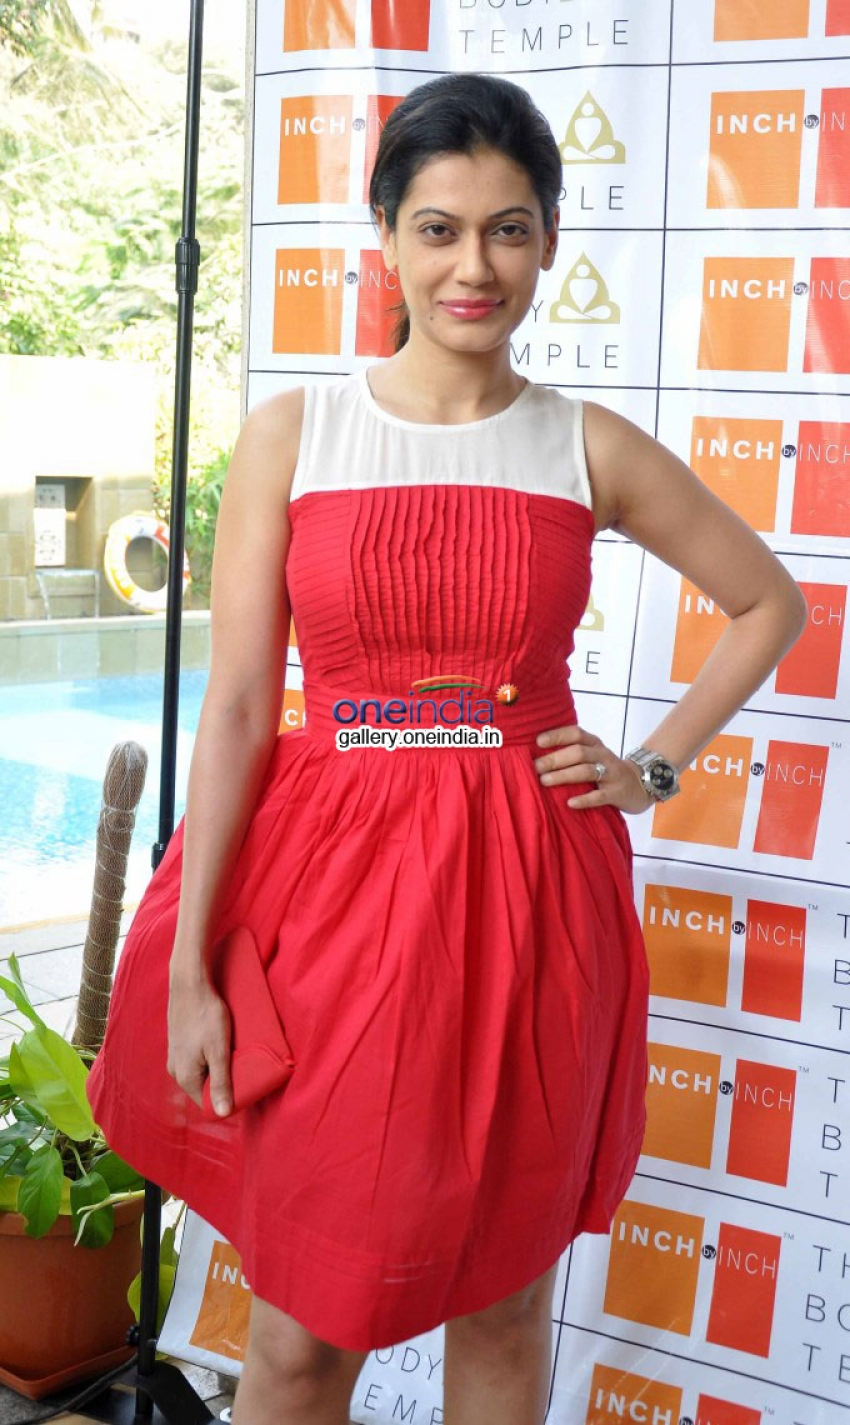 Sheetal Nahar hosted a Brunch at Inch by Inch spa at Versova Photos